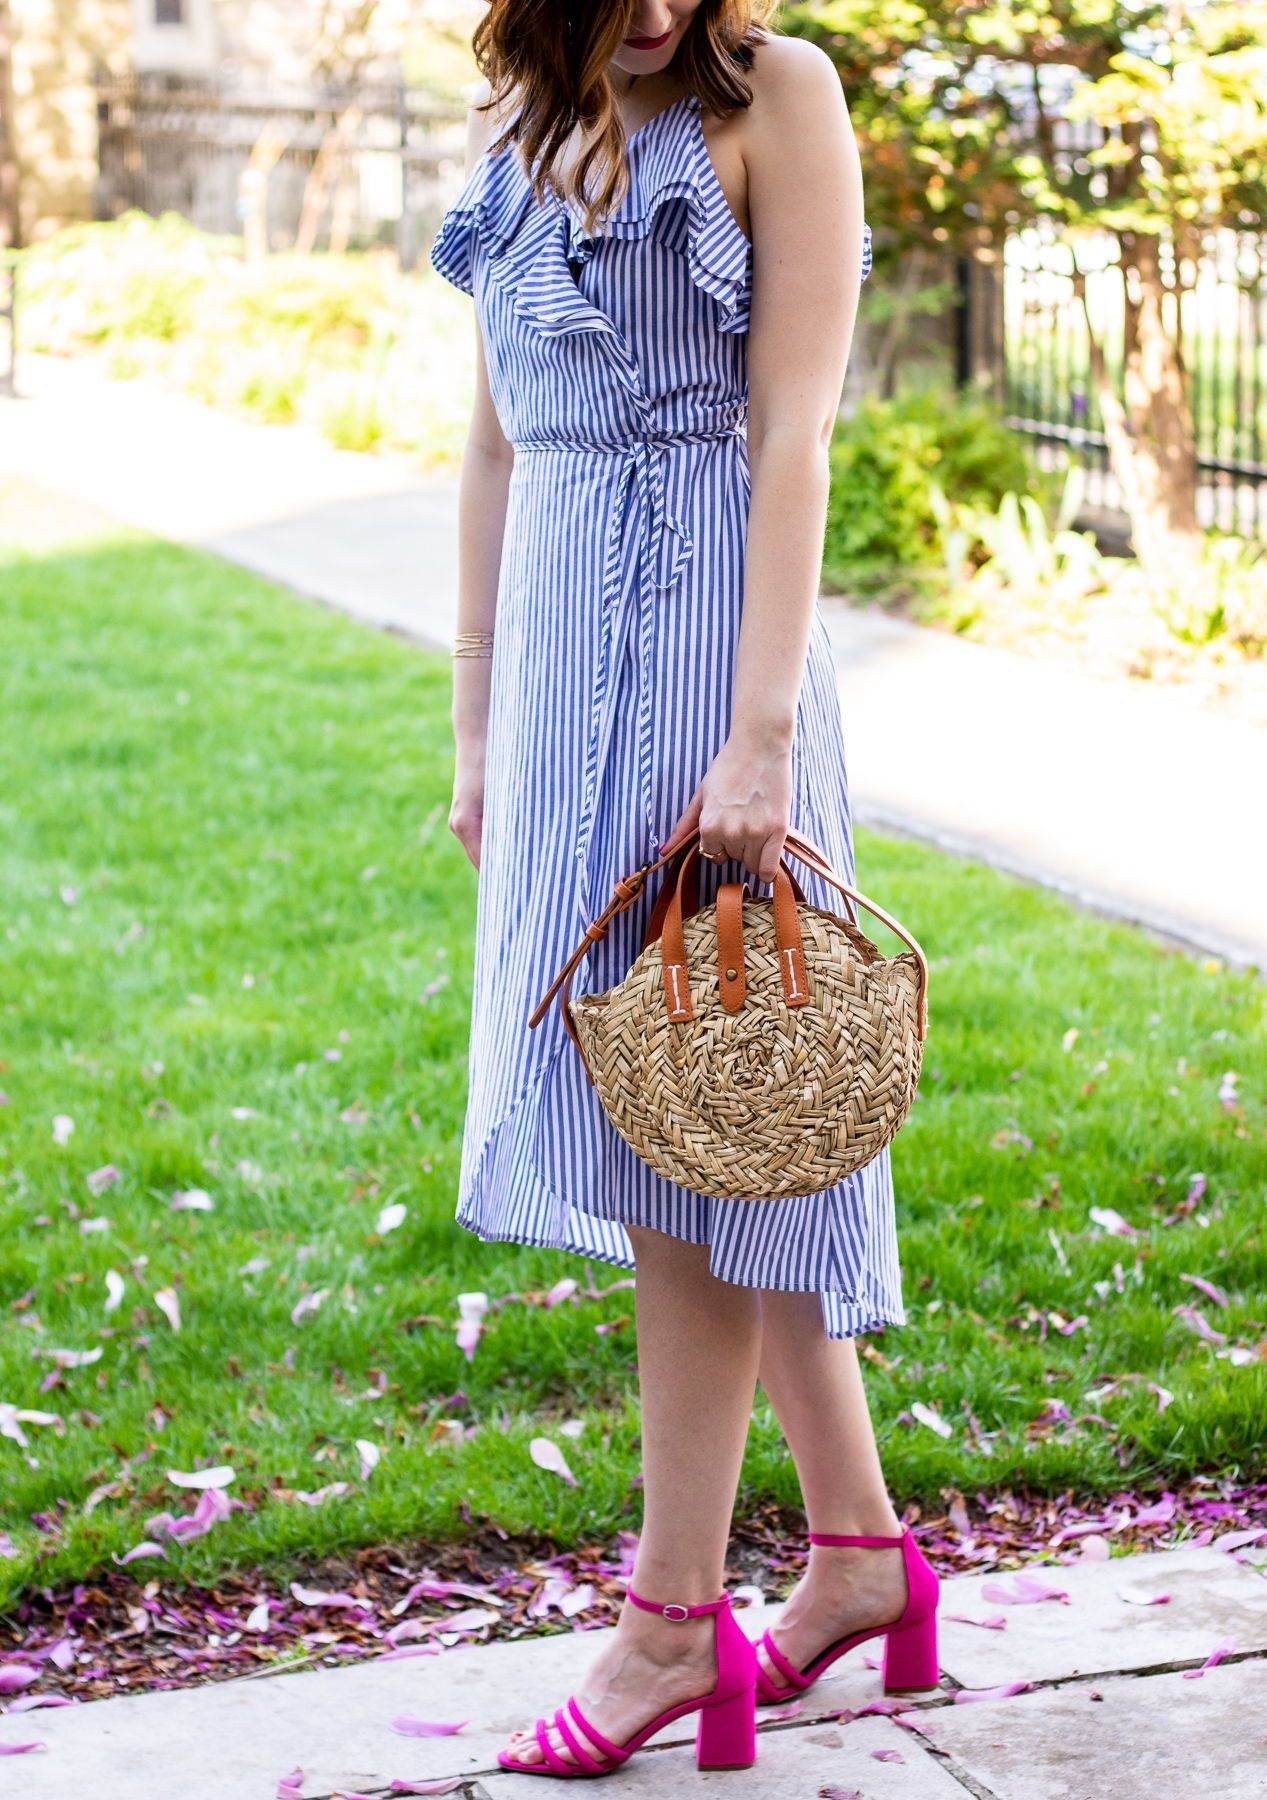 Summer wedding outfit ideas for guests what to wear to a wedding